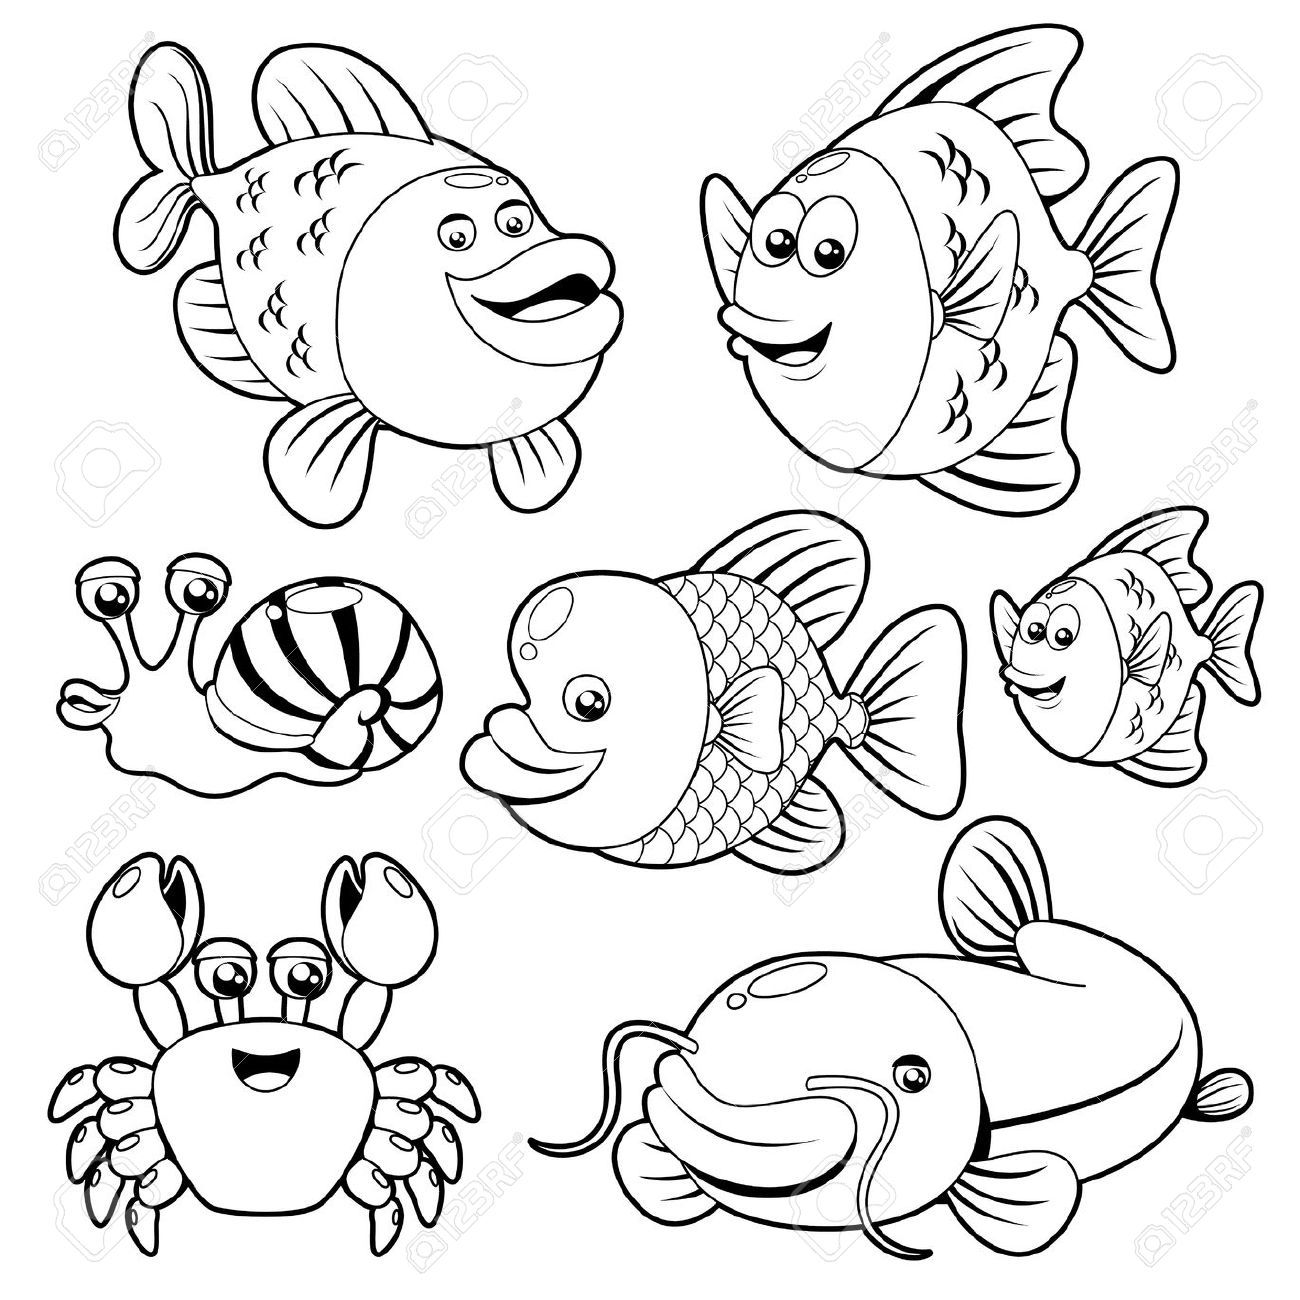 Ocean Animals Clipart Black And White Fishs black and